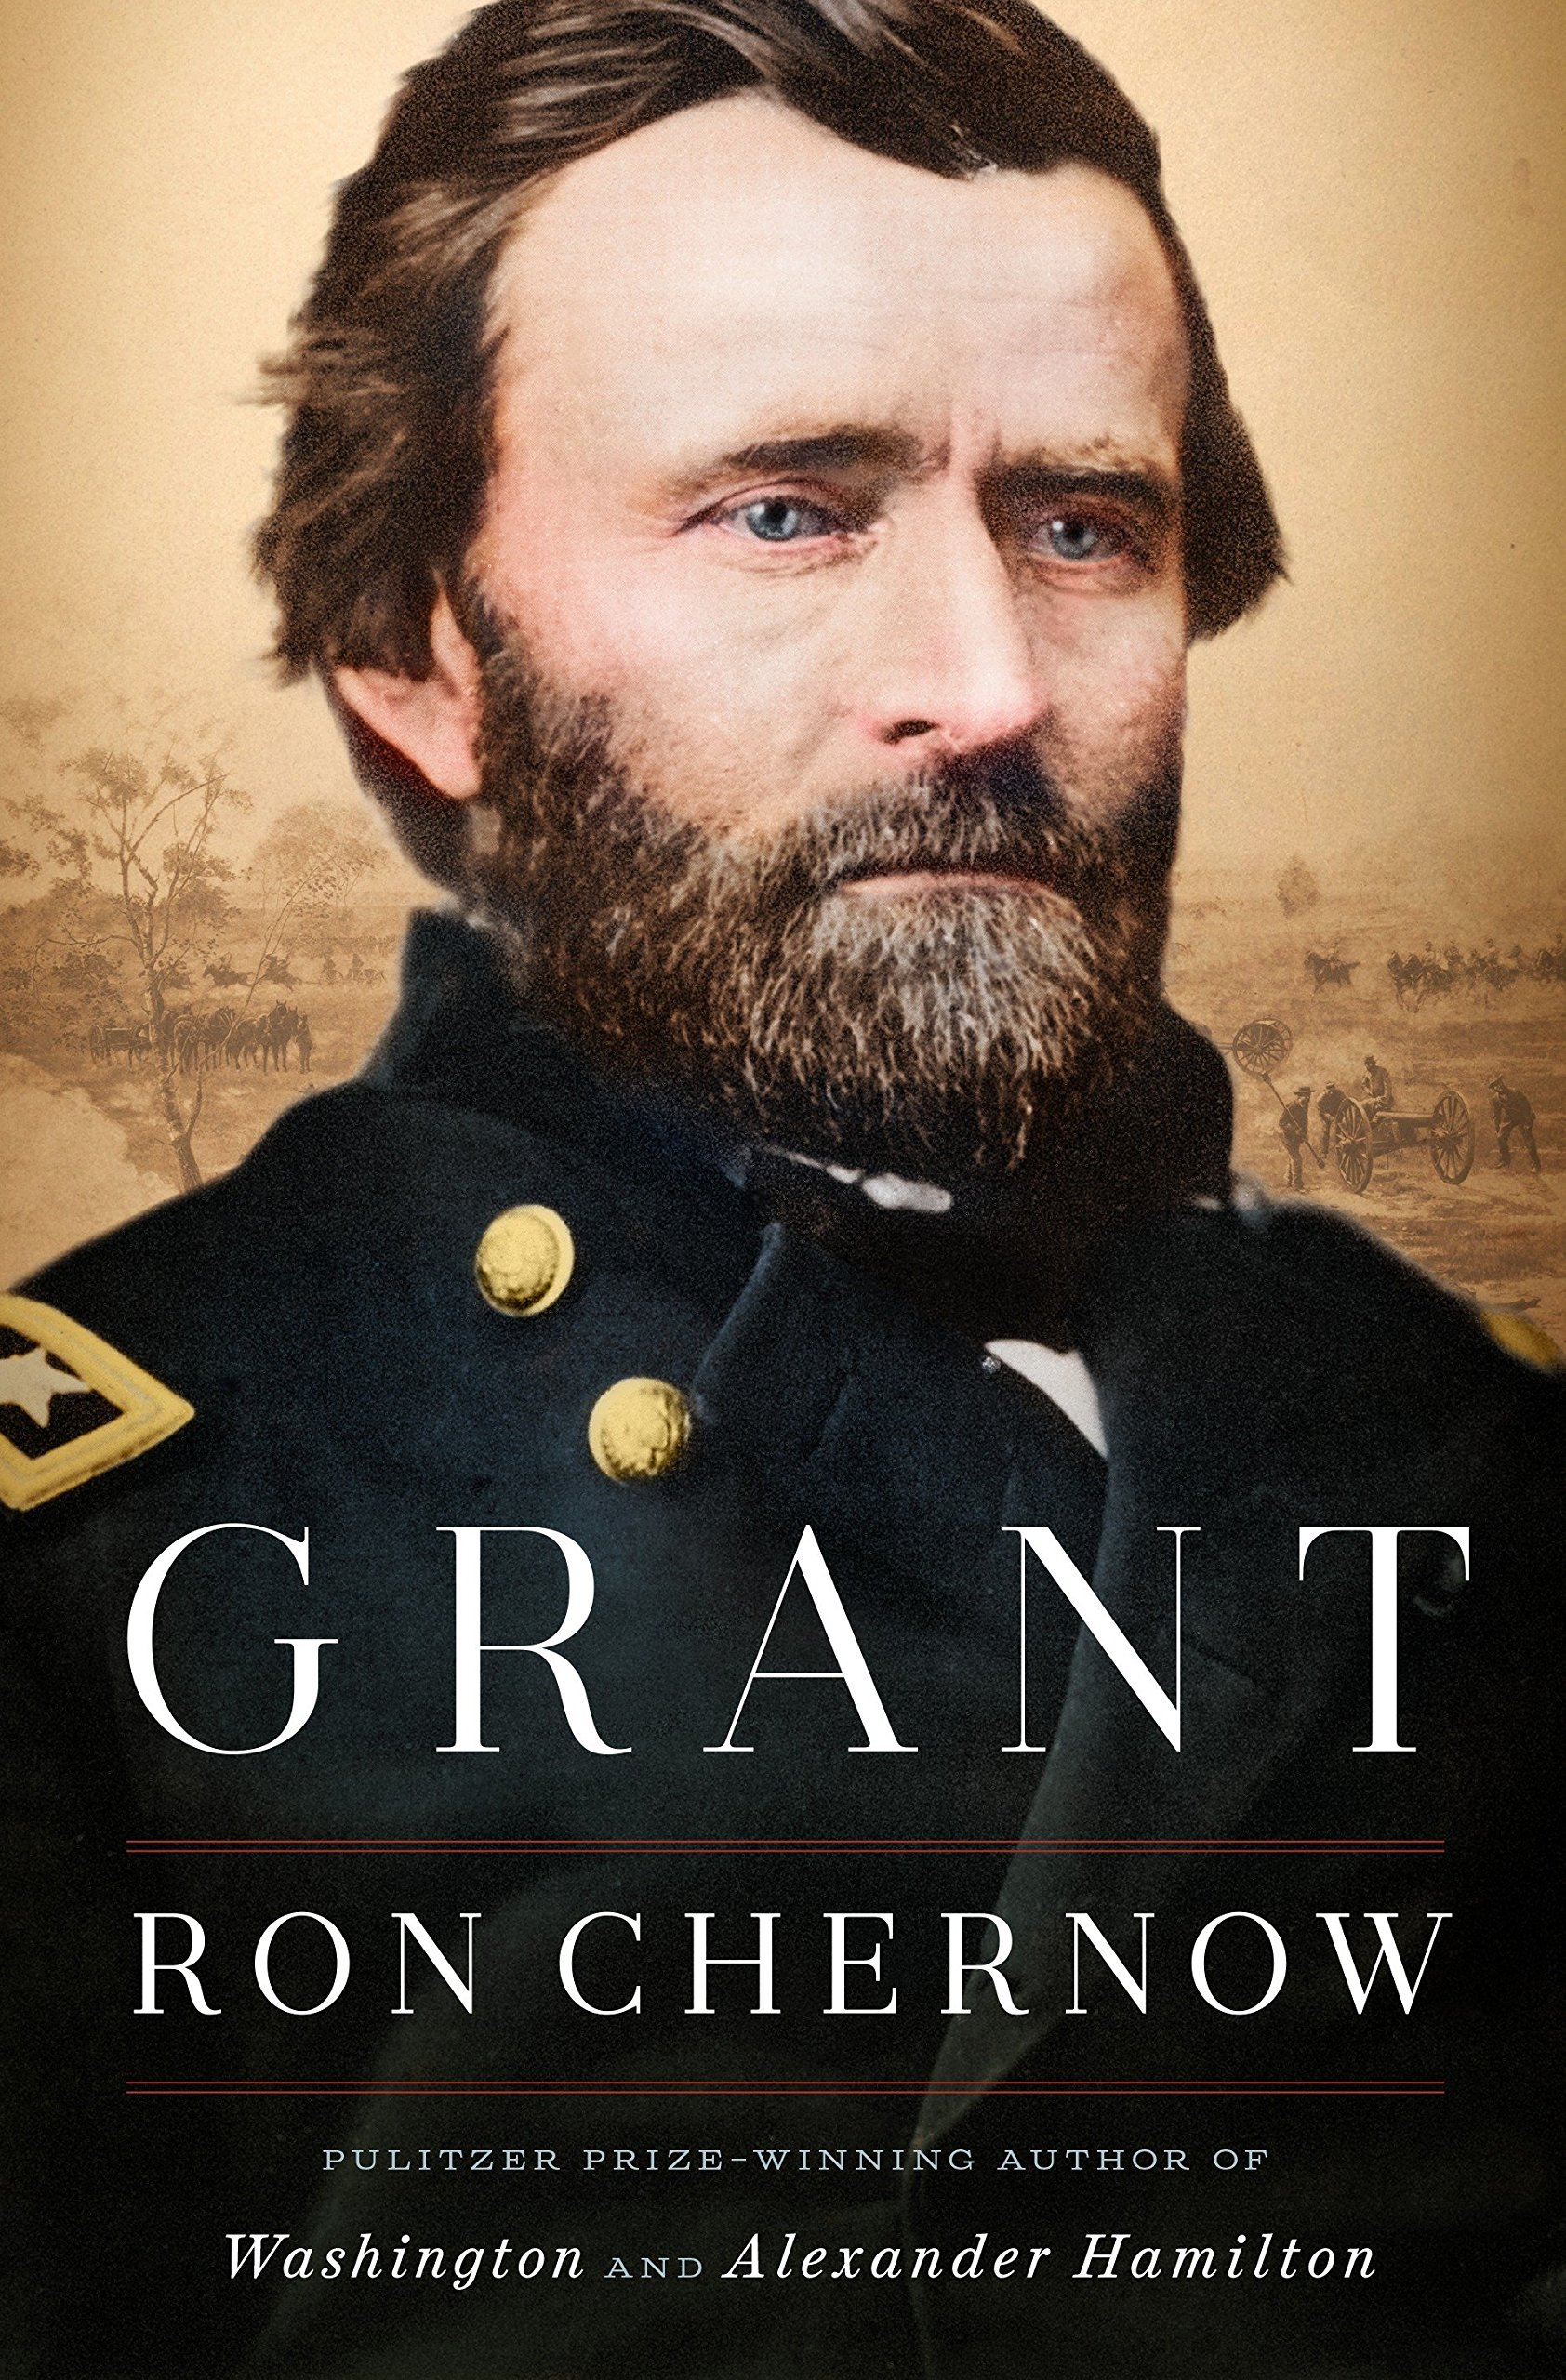 Image result for Grant, 2017 By: Ron Chernow